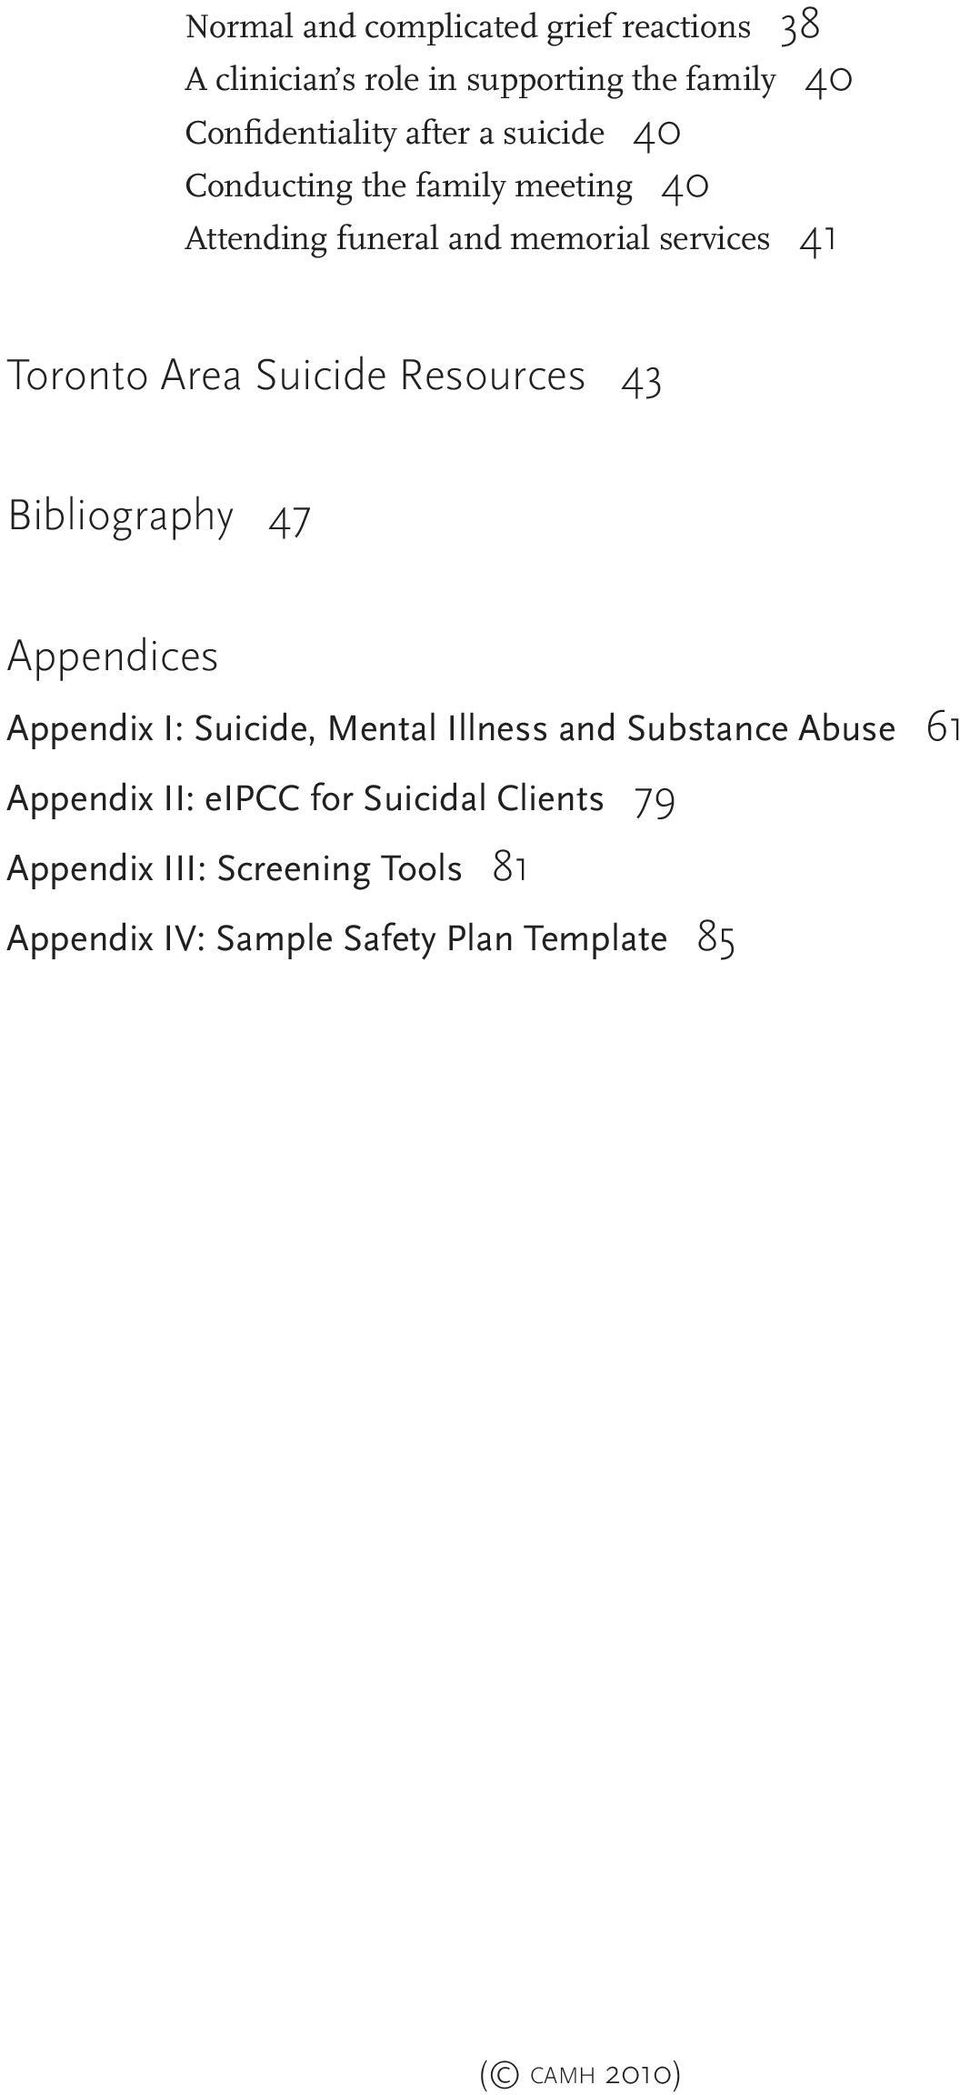 camh Suicide prevention and assessment handbook - PDF